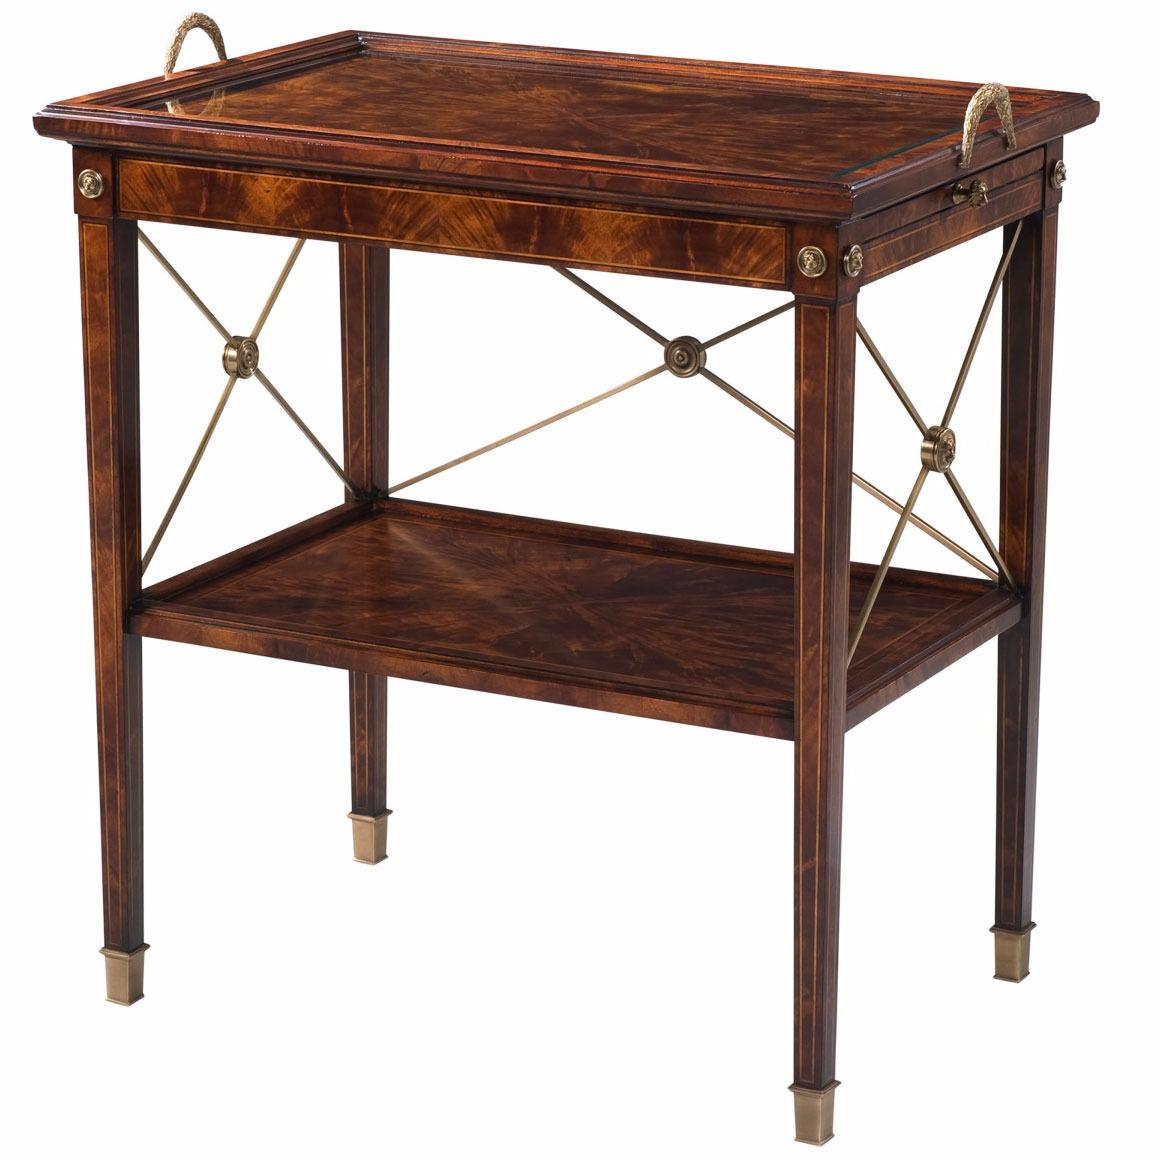 Mahogany two tier butlers tray table lamp side tables for Tray side table